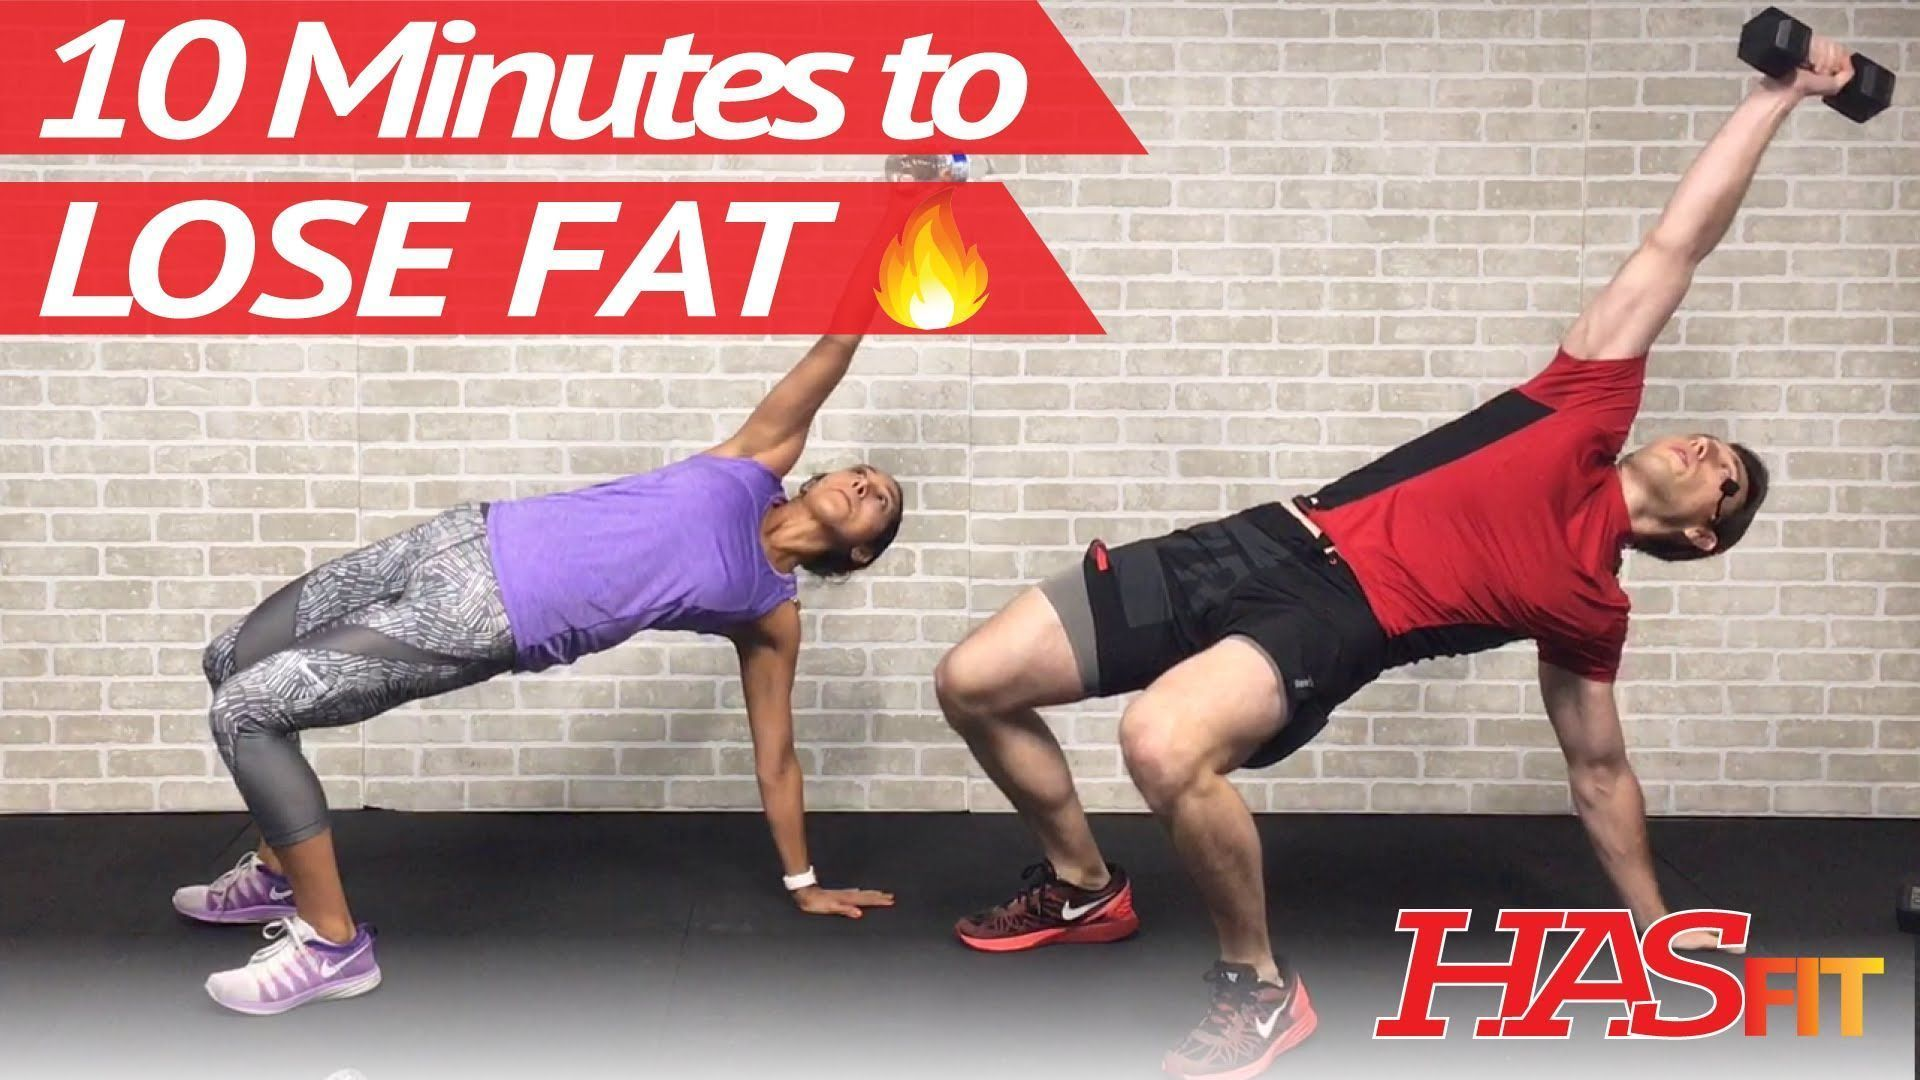 Fitness noExcuses  Minute Cardio Workout at Home for Women u Men